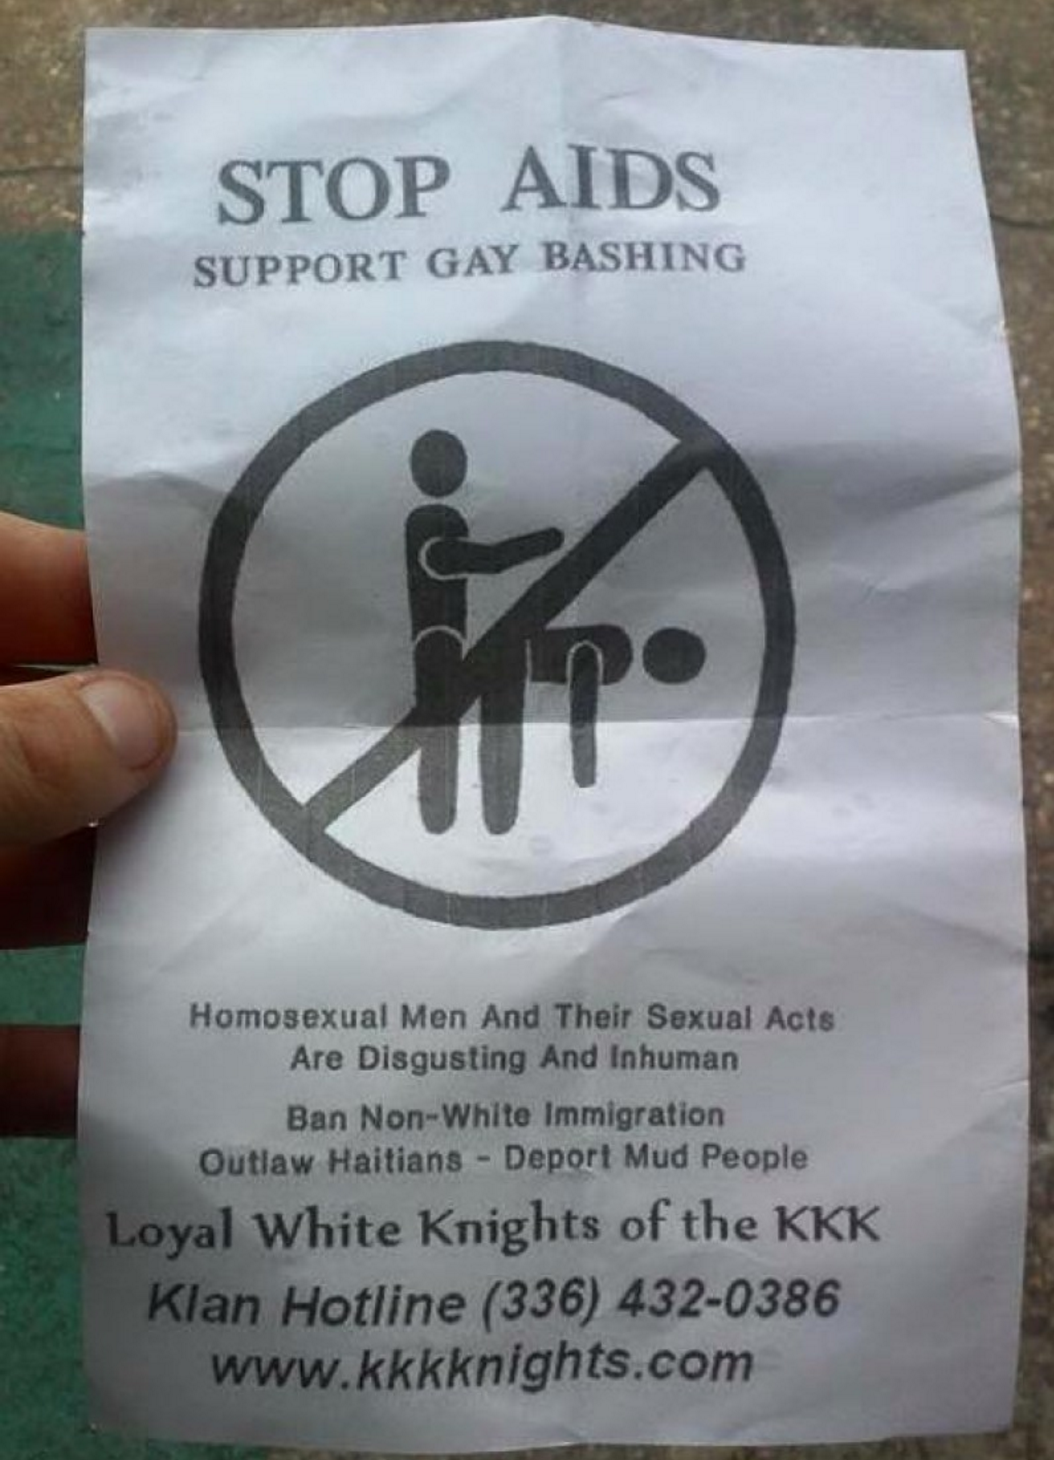 KKK group opposing Jacksonville LGBT ordinance has N.C. ties